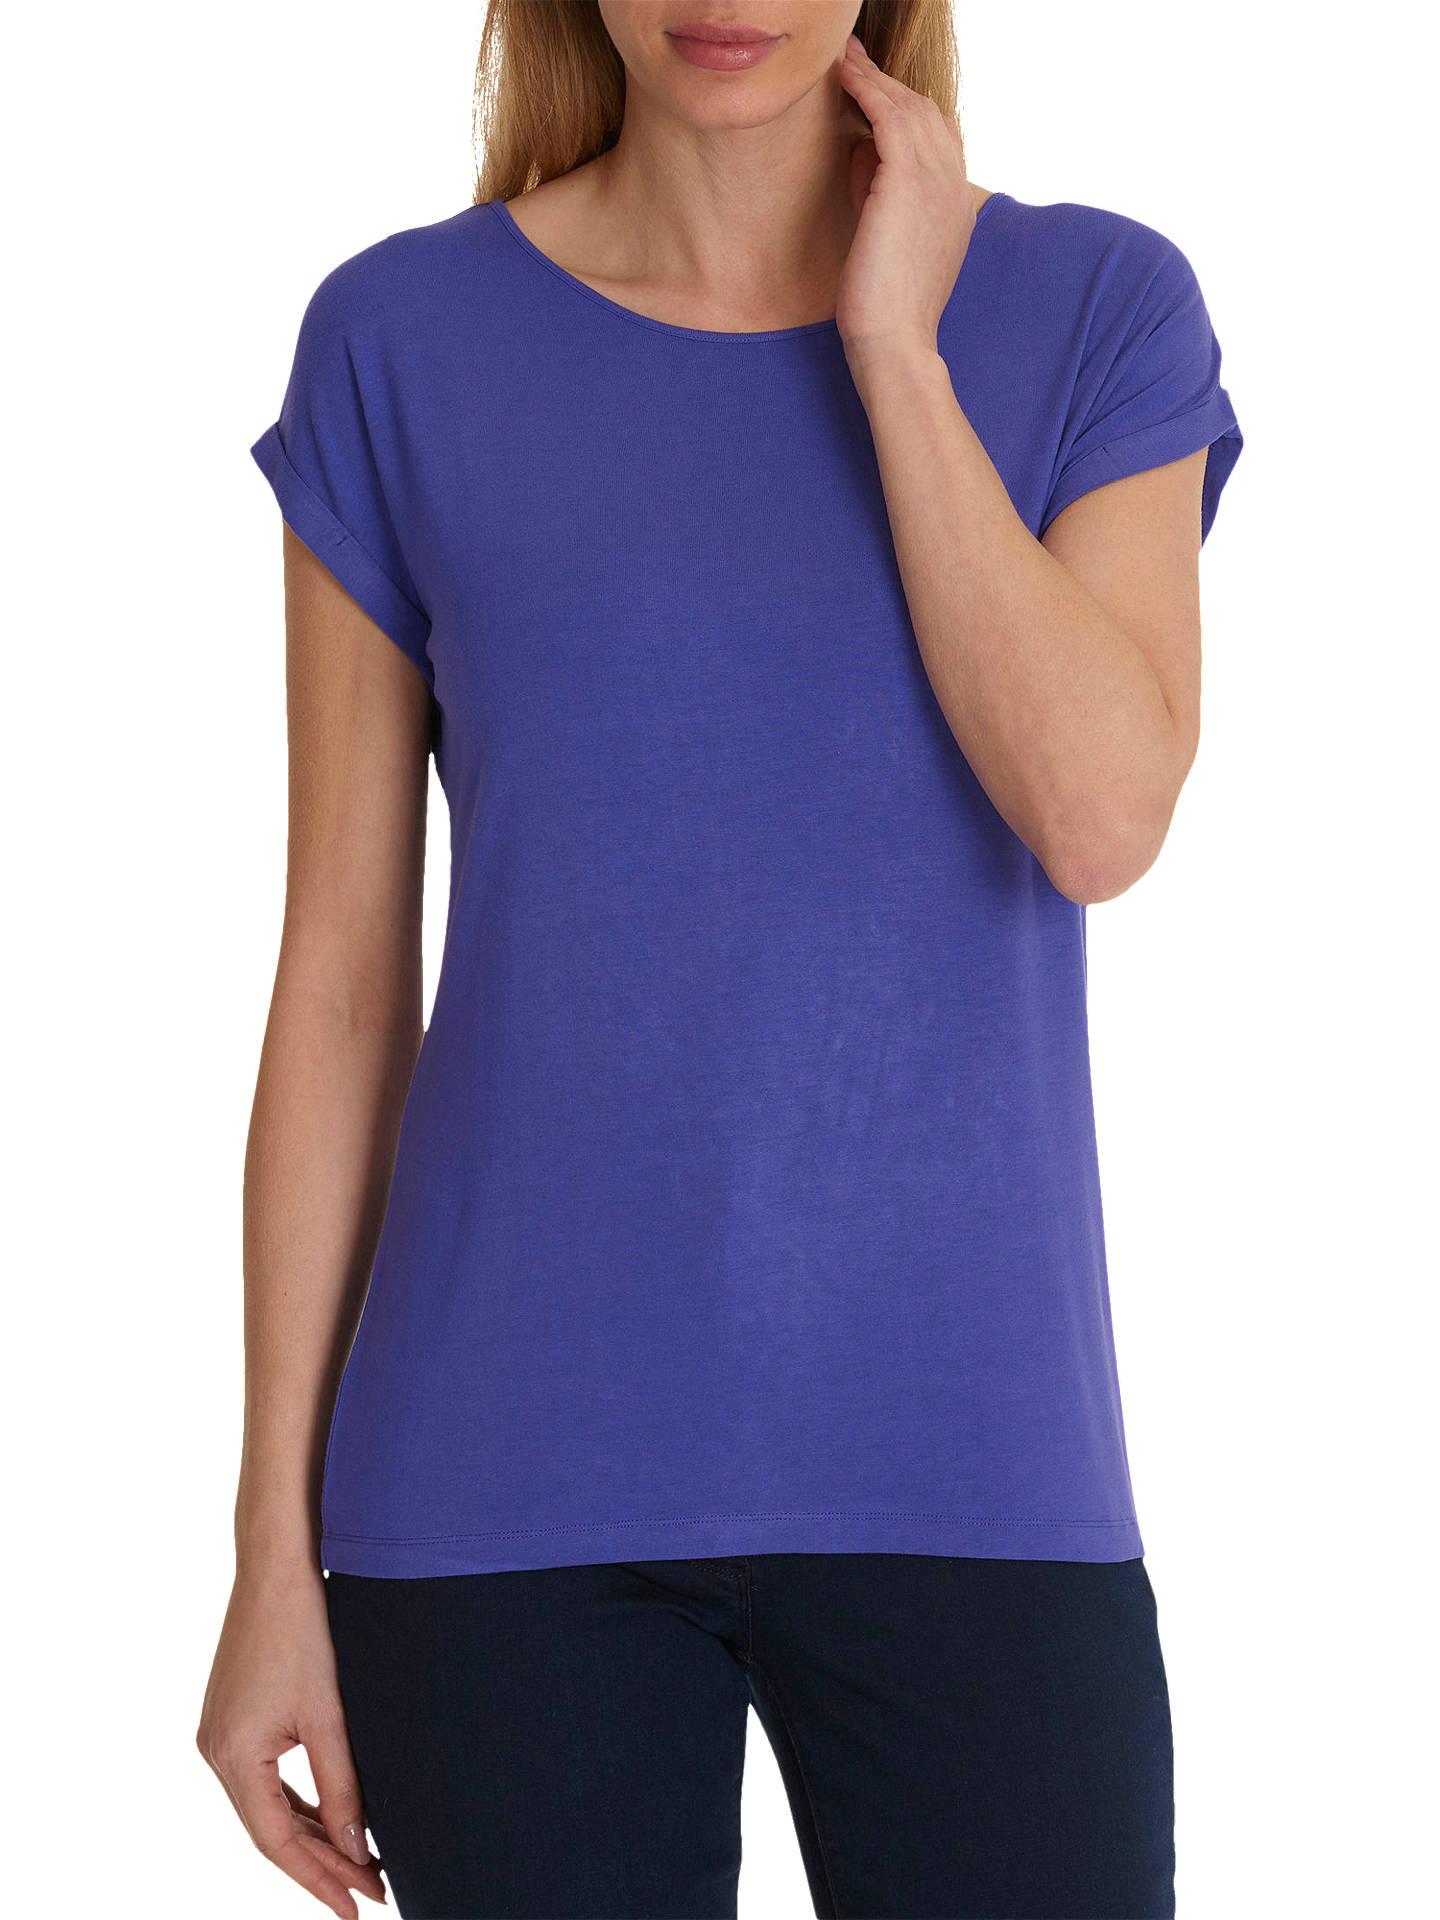 BuyBetty Barclay Cap Sleeve T-Shirt, Liberty, 10 Online at johnlewis.com